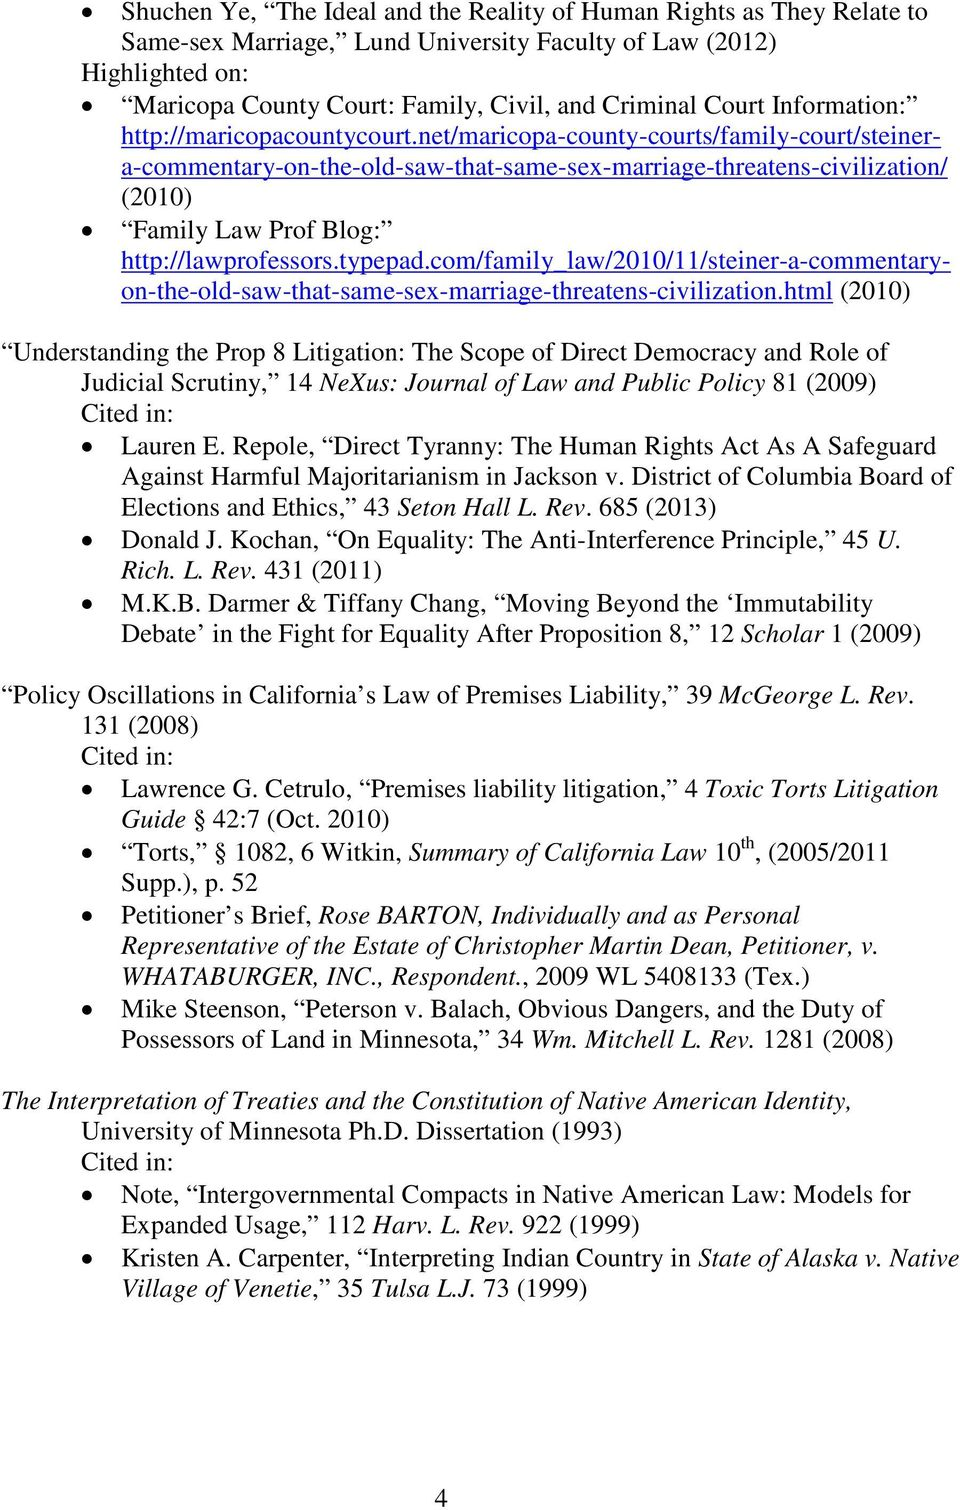 net/maricopa-county-courts/family-court/steinera-commentary-on-the-old-saw-that-same-sex-marriage-threatens-civilization/ (2010) Family Law Prof Blog: http://lawprofessors.typepad.